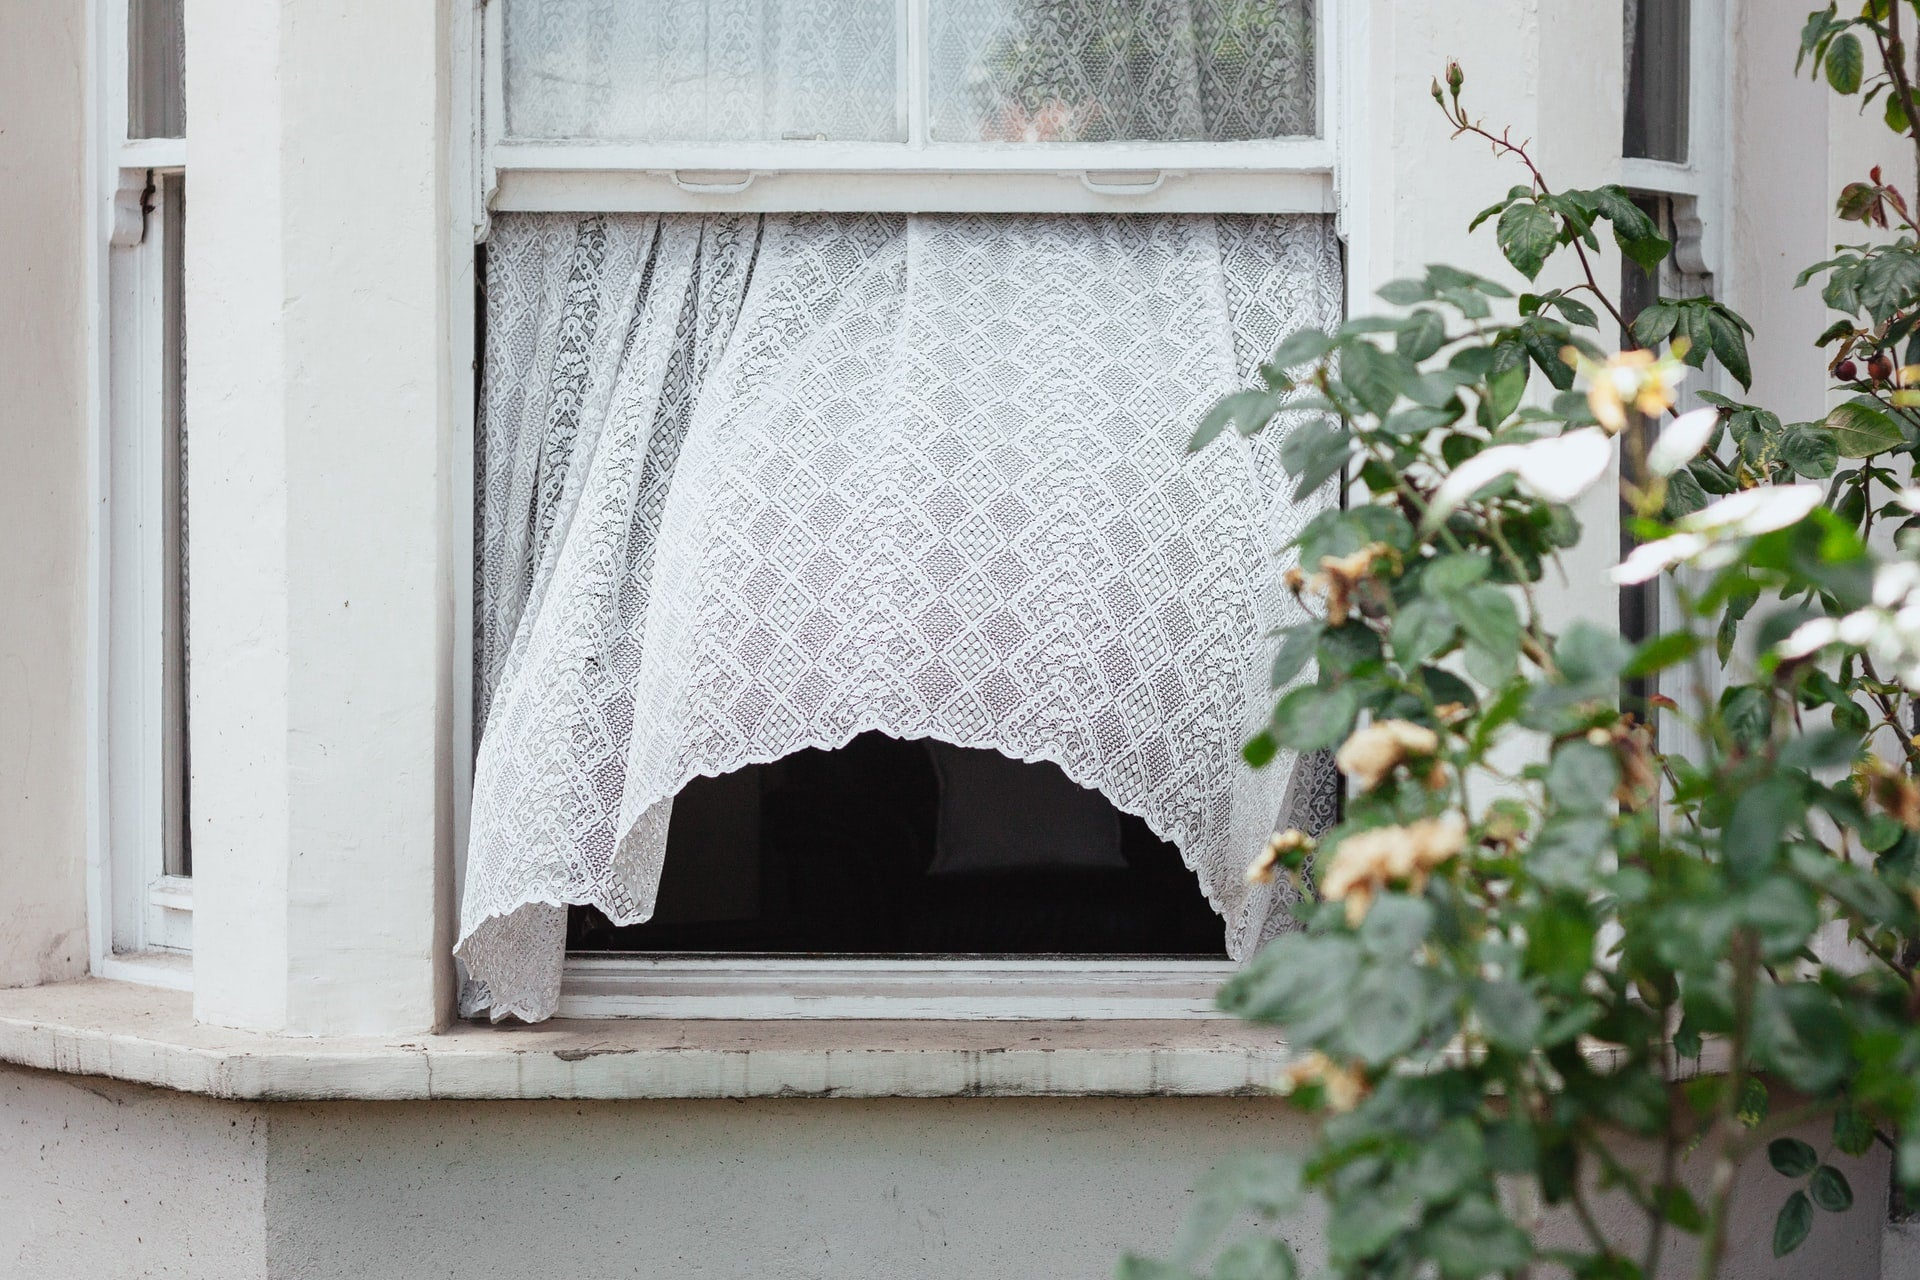 open window with breeze blowing curtain